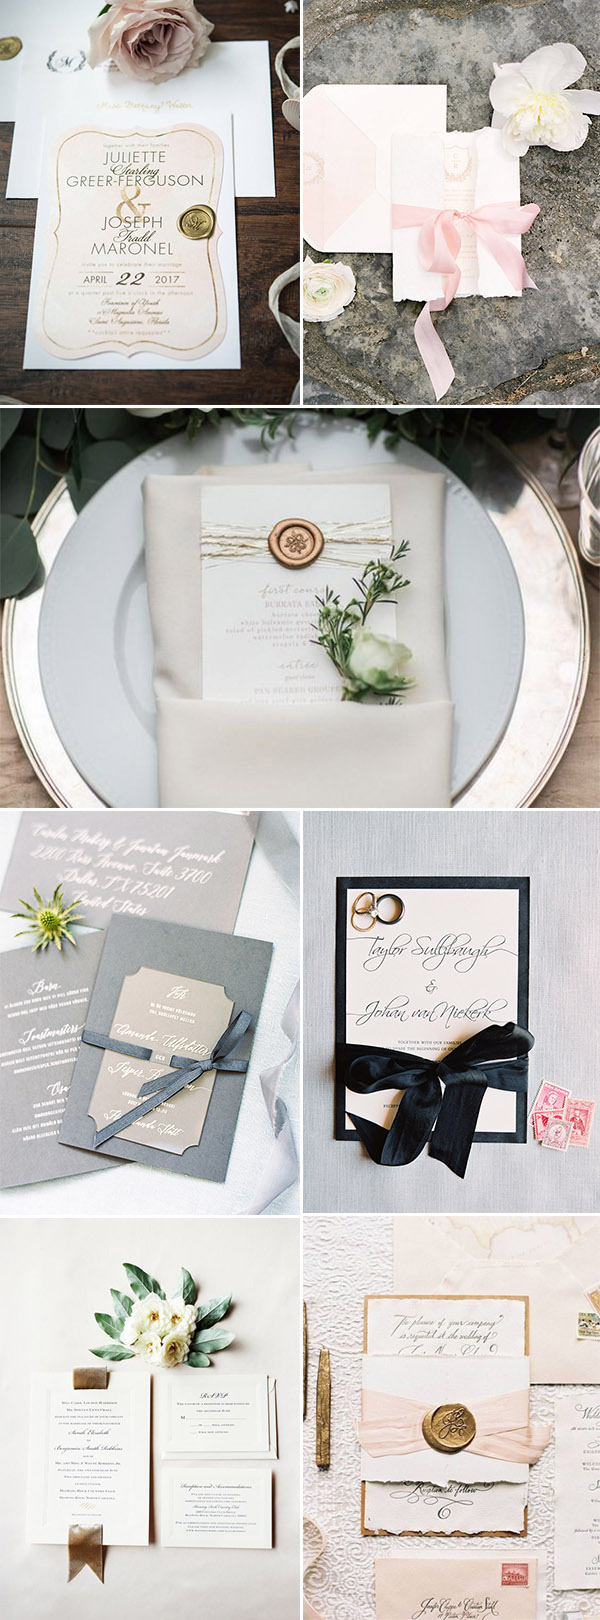 upgraded simple wedding invitation with wax seal and ribbon